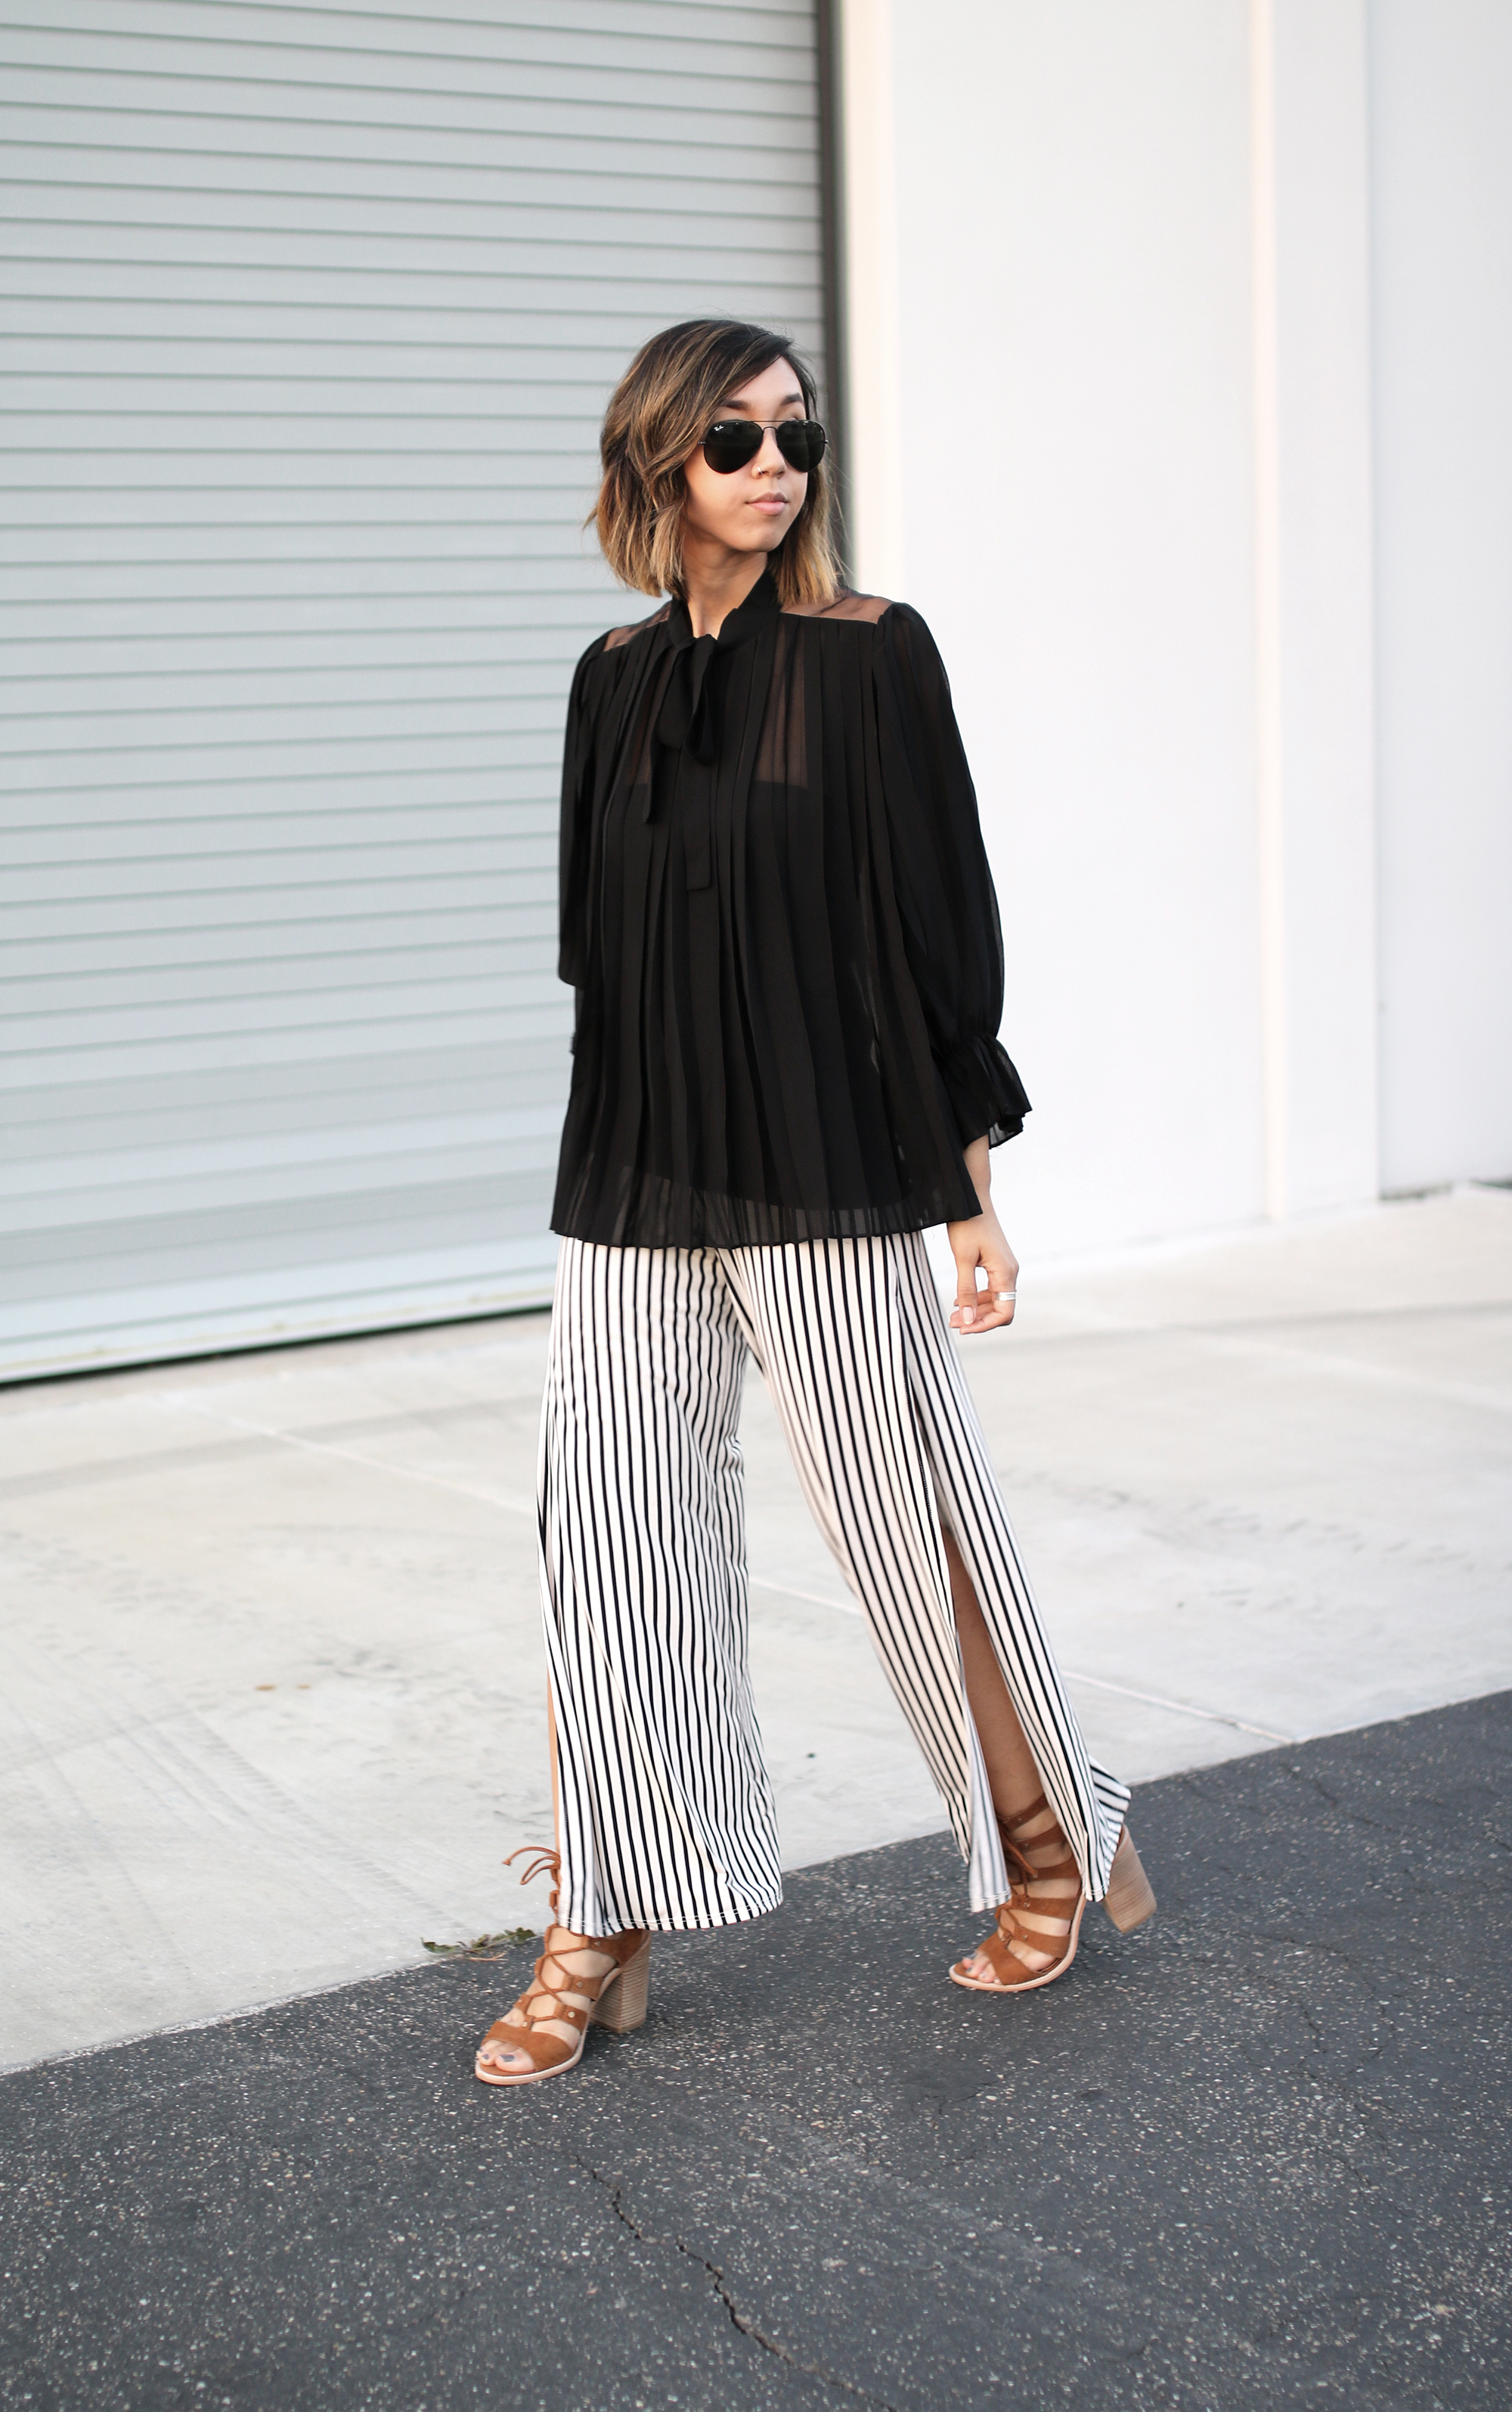 SanSouci_striped_sideslit_pant6